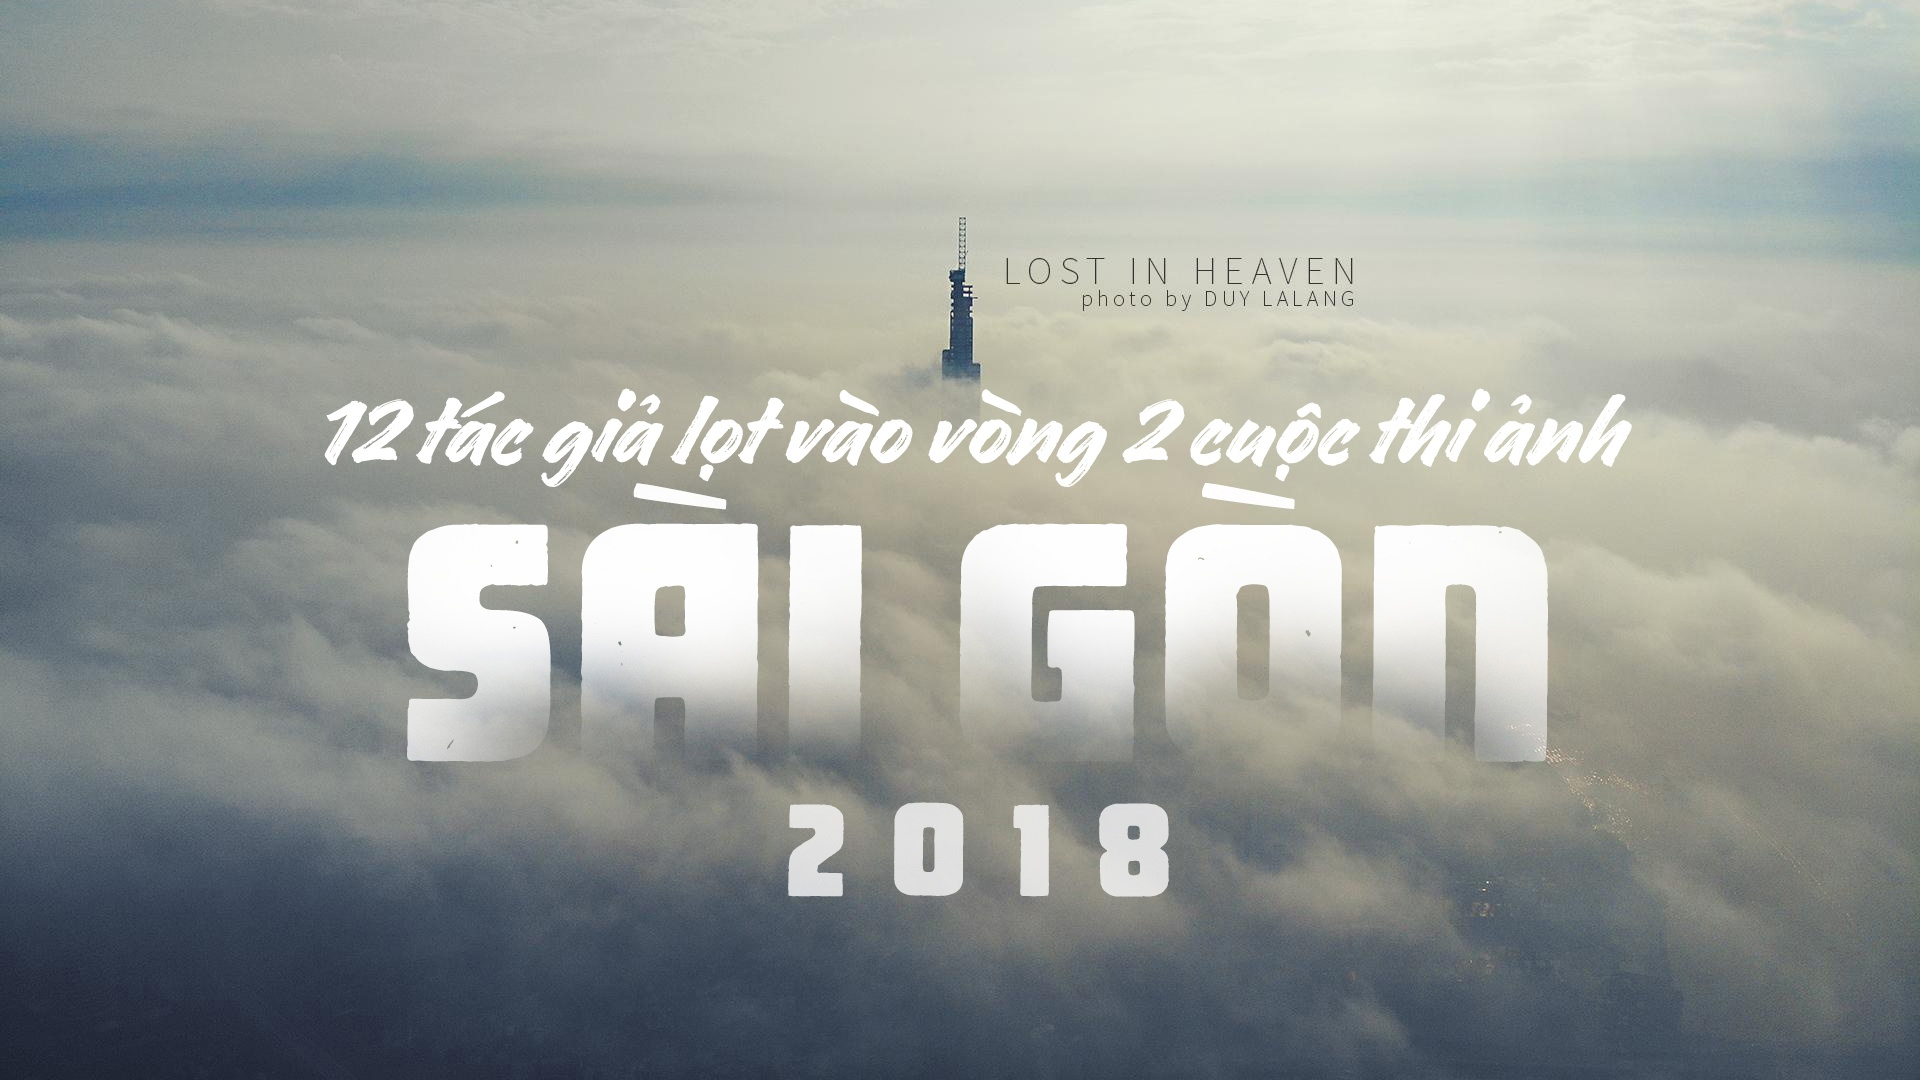 cuoc thi anh Sai Gon 2018 anh 1